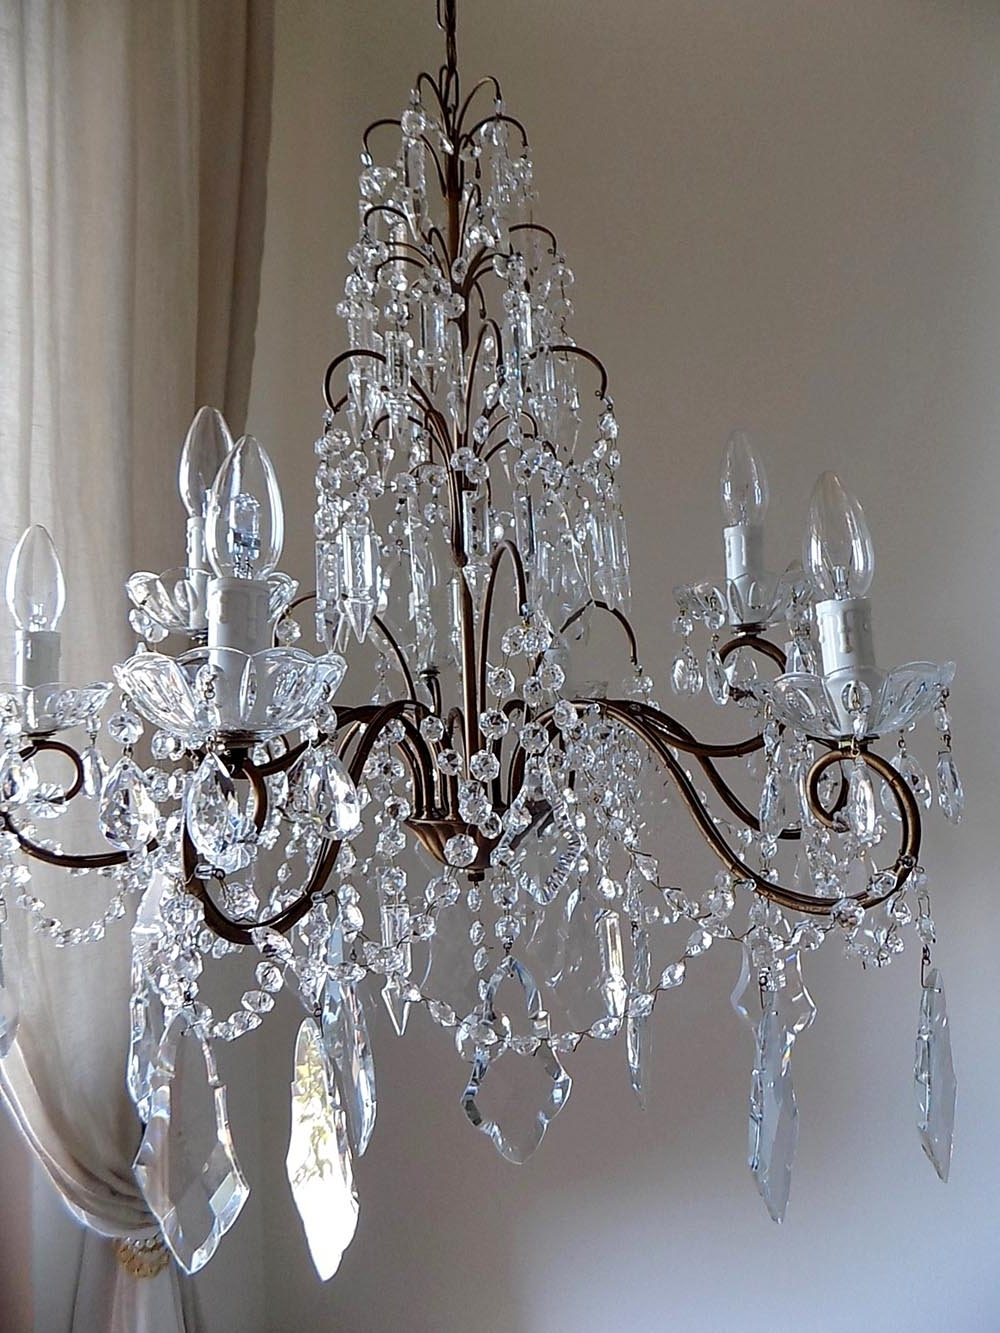 Italian Crystal Chandeliers Antique – Chandelier Designs Within Most Recent Vintage Italian Chandeliers (View 4 of 15)